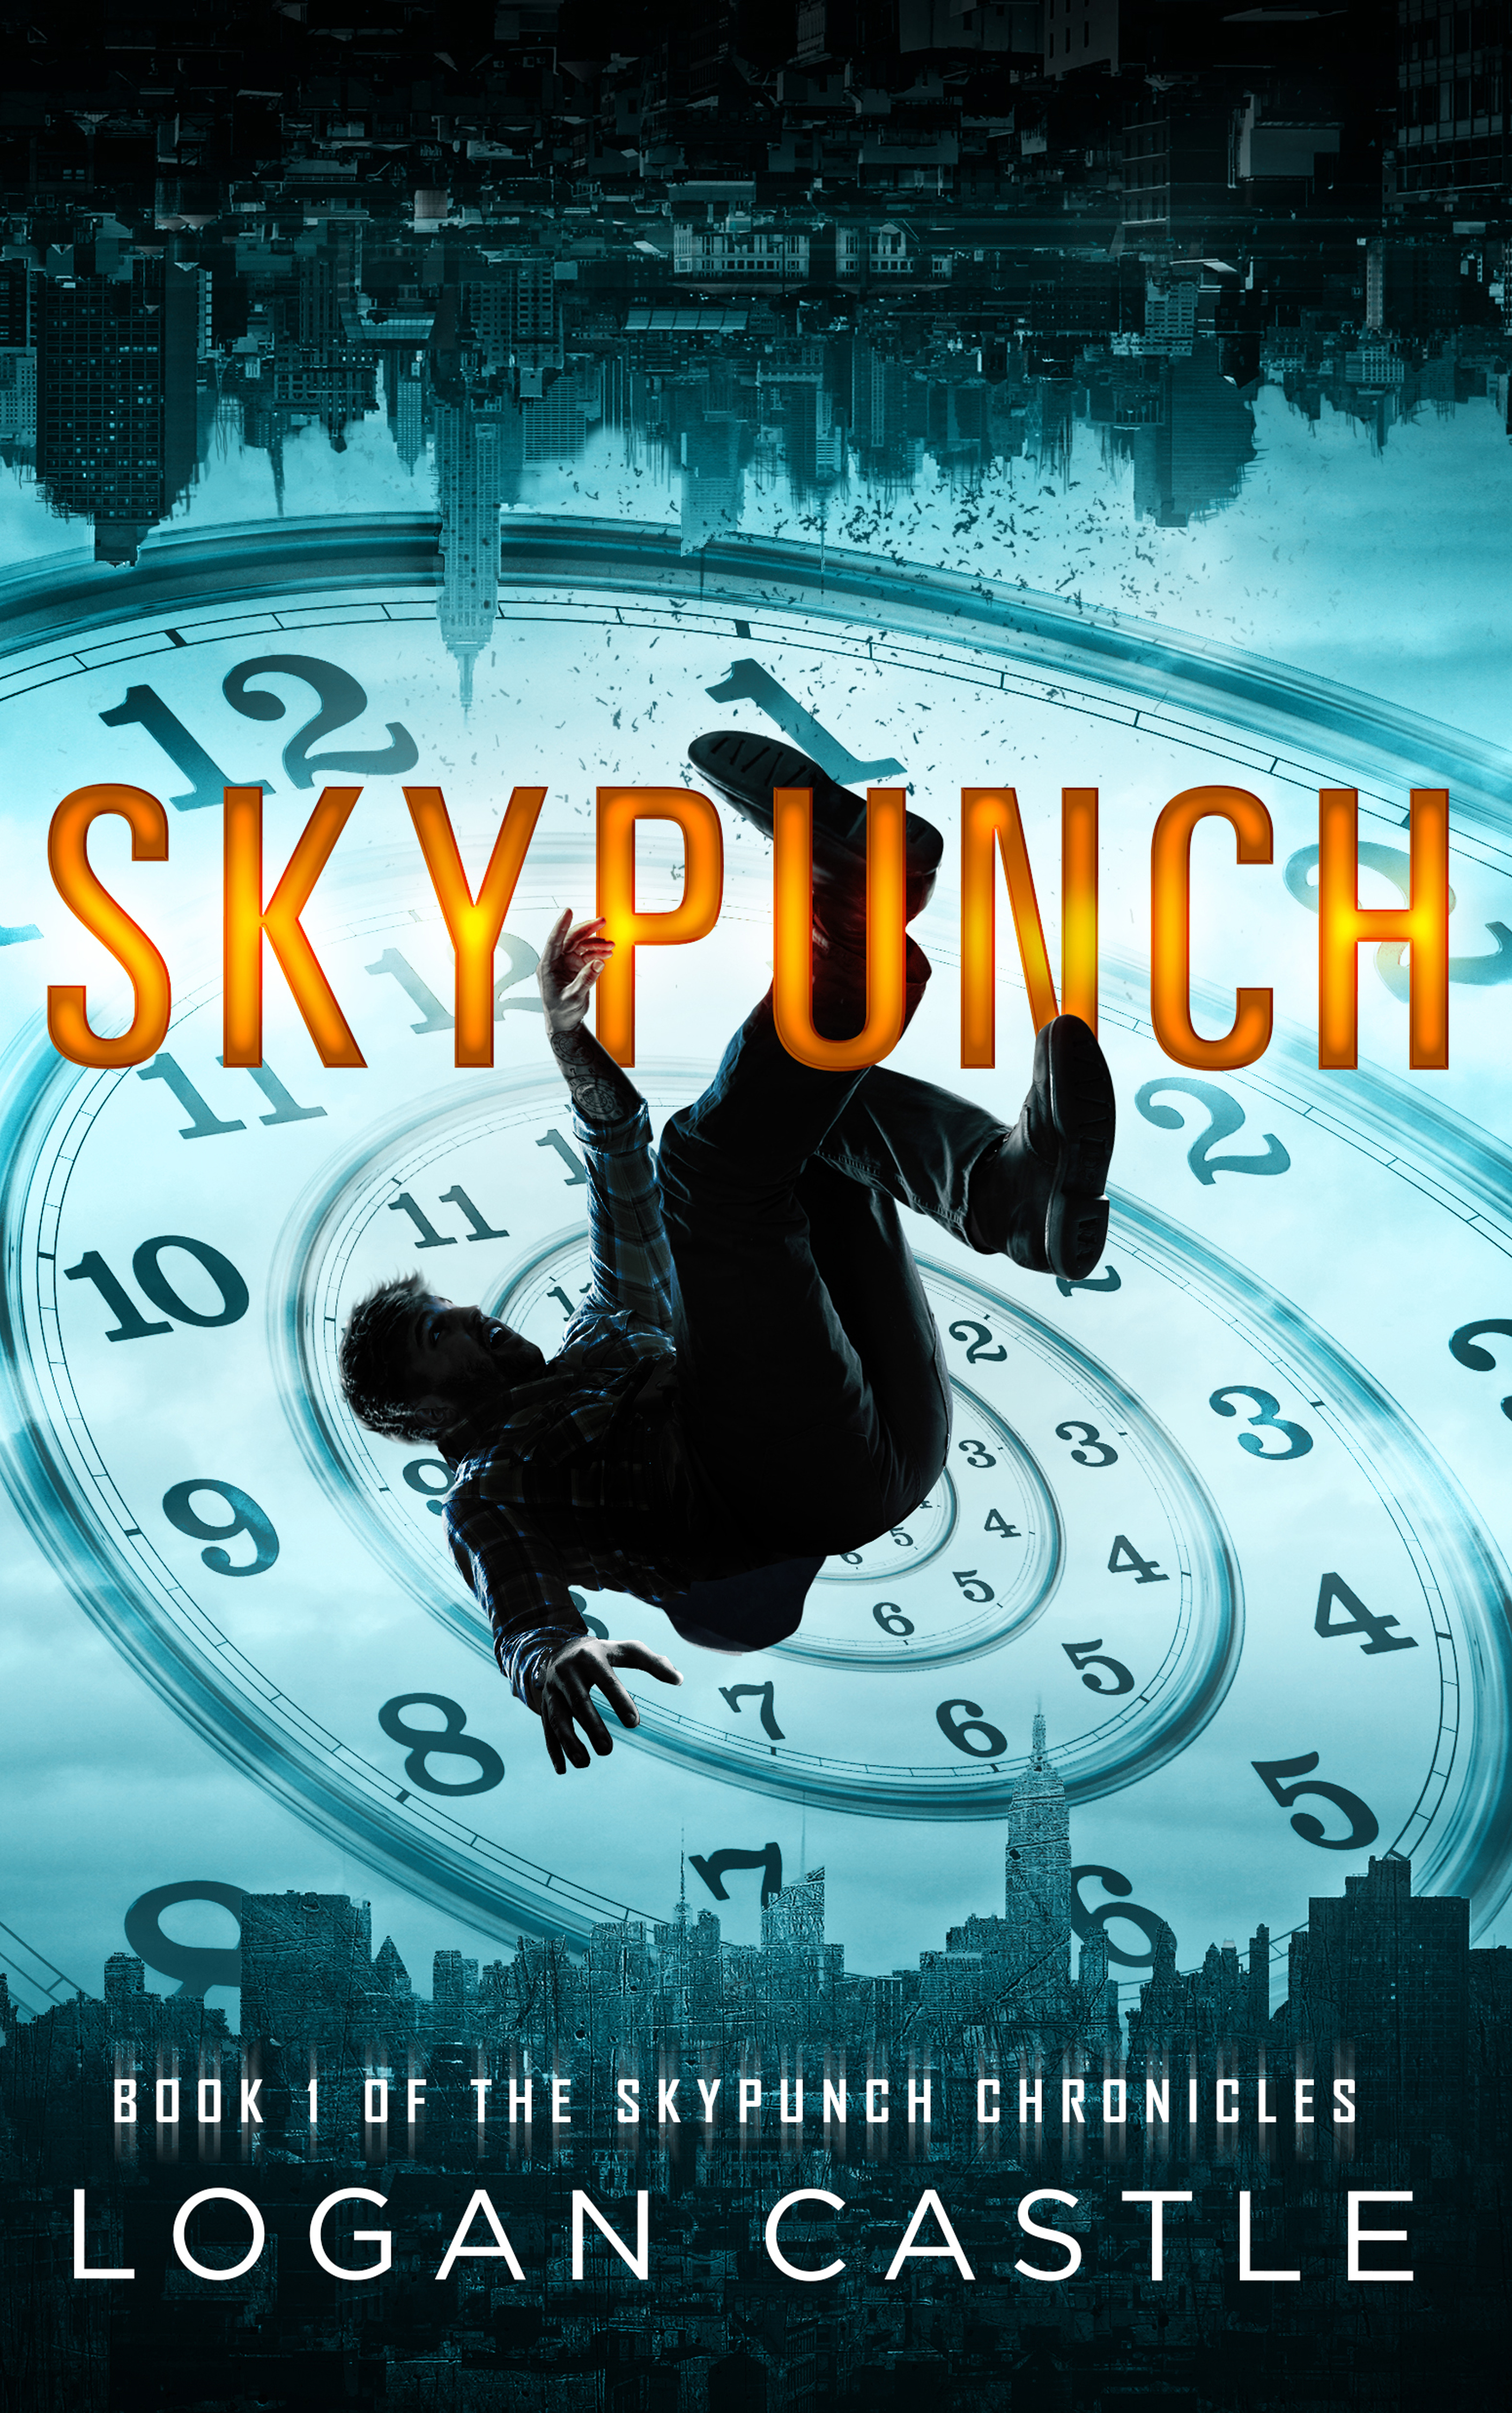 About Skypunch By Logan Castle